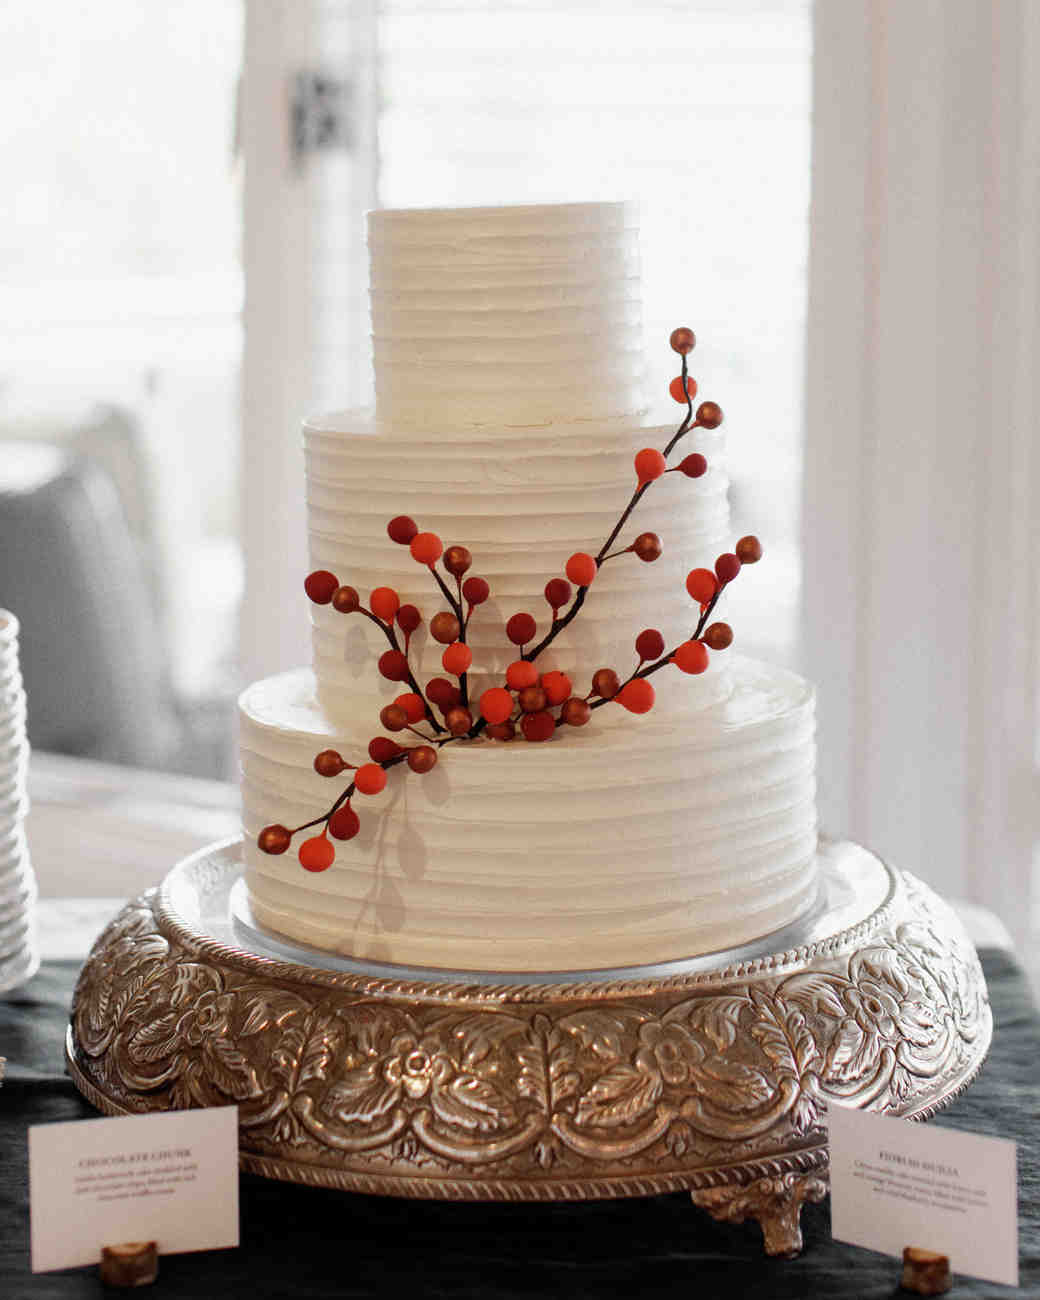 Vegan And Gluten Free Wedding Cake Ideas Alternative: 39 Wedding Cakes That Prove Vanilla Isn't Boring